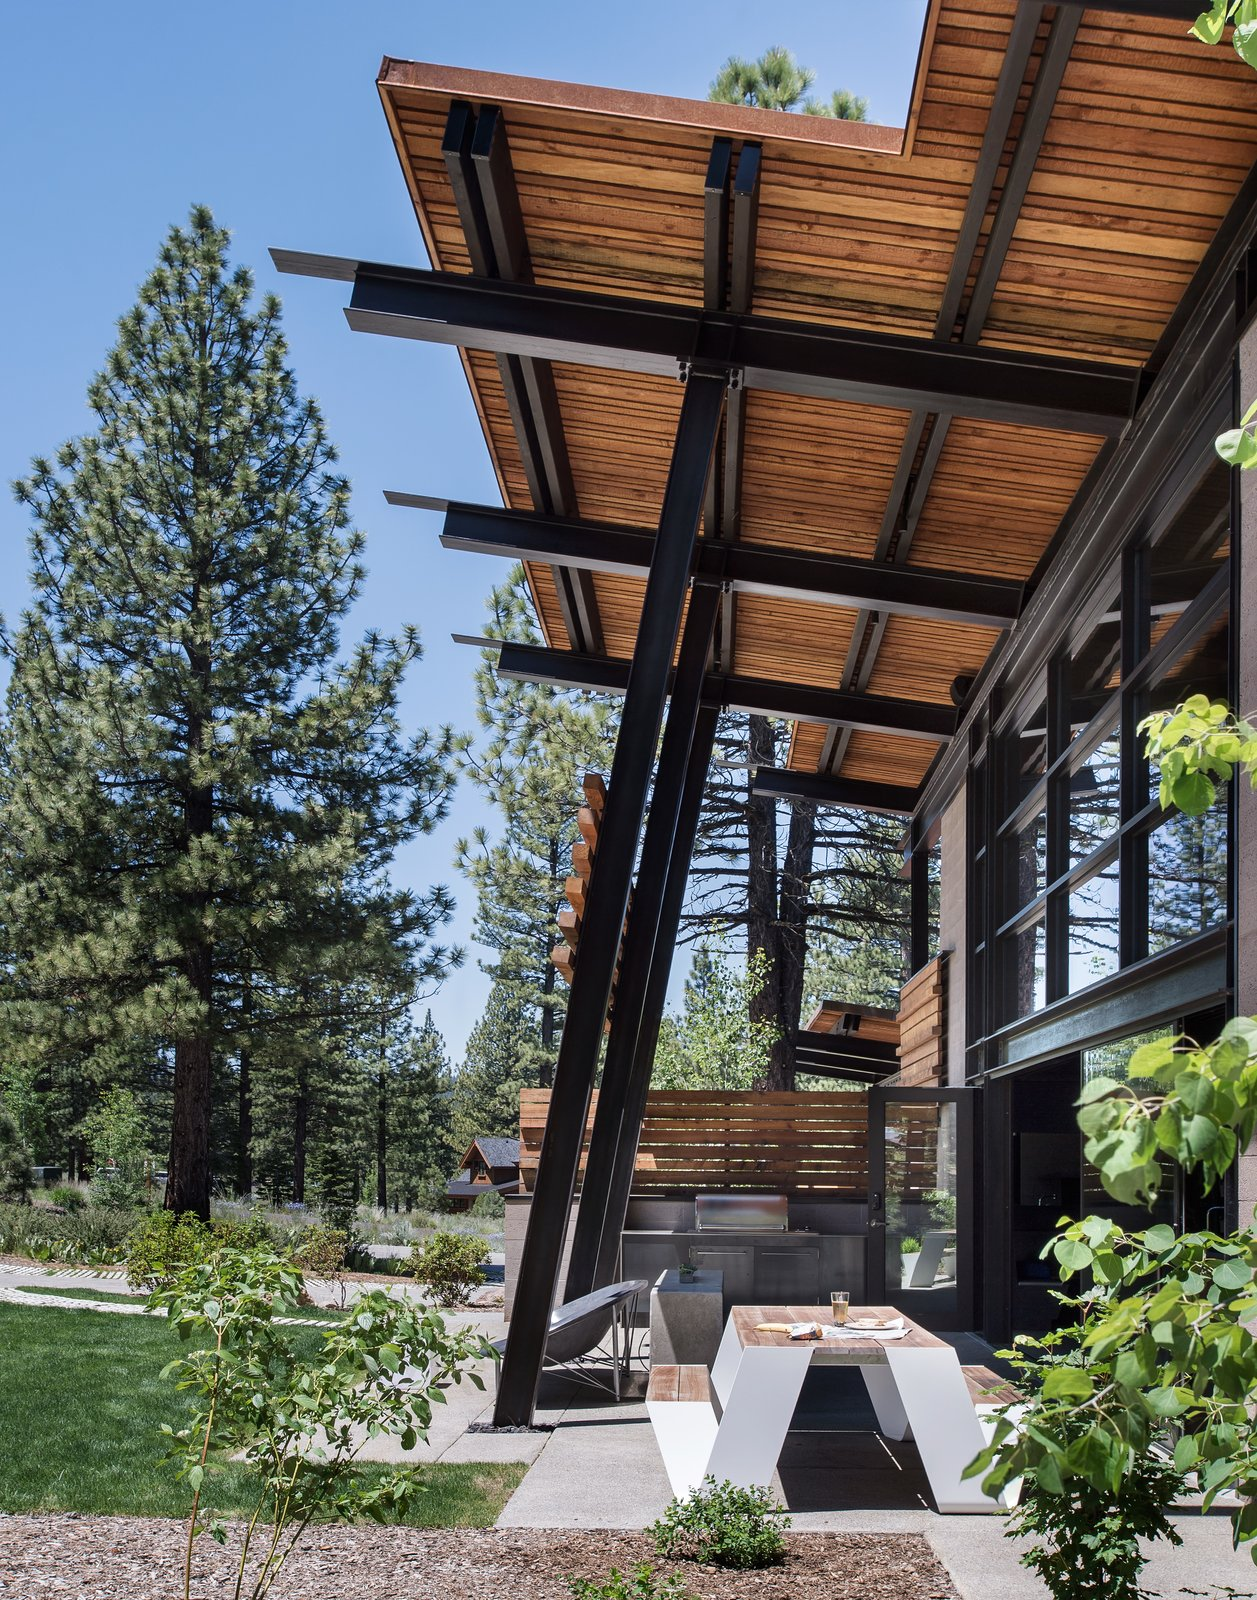 Outdoor, Back Yard, Trees, Grass, Walkways, Shrubs, Small Patio, Porch, Deck, Horizontal Fences, Wall, and Wood Fences, Wall You'd never designed for special needs children before the Bancroft residence, how did you interpret the clients' needs?  Jack Hawkins, architect: I would like to say I did tons of research, but I didn't. I went with the parents' lead. I took most of my design cues from them. They're the immediate caregivers, they know their children and about autism. They did all the research and told me what was important.  Photo 16 of 19 in A Forest Sanctuary Designed to Support Autistic Triplets, Their Parents, and a Host of Caregivers